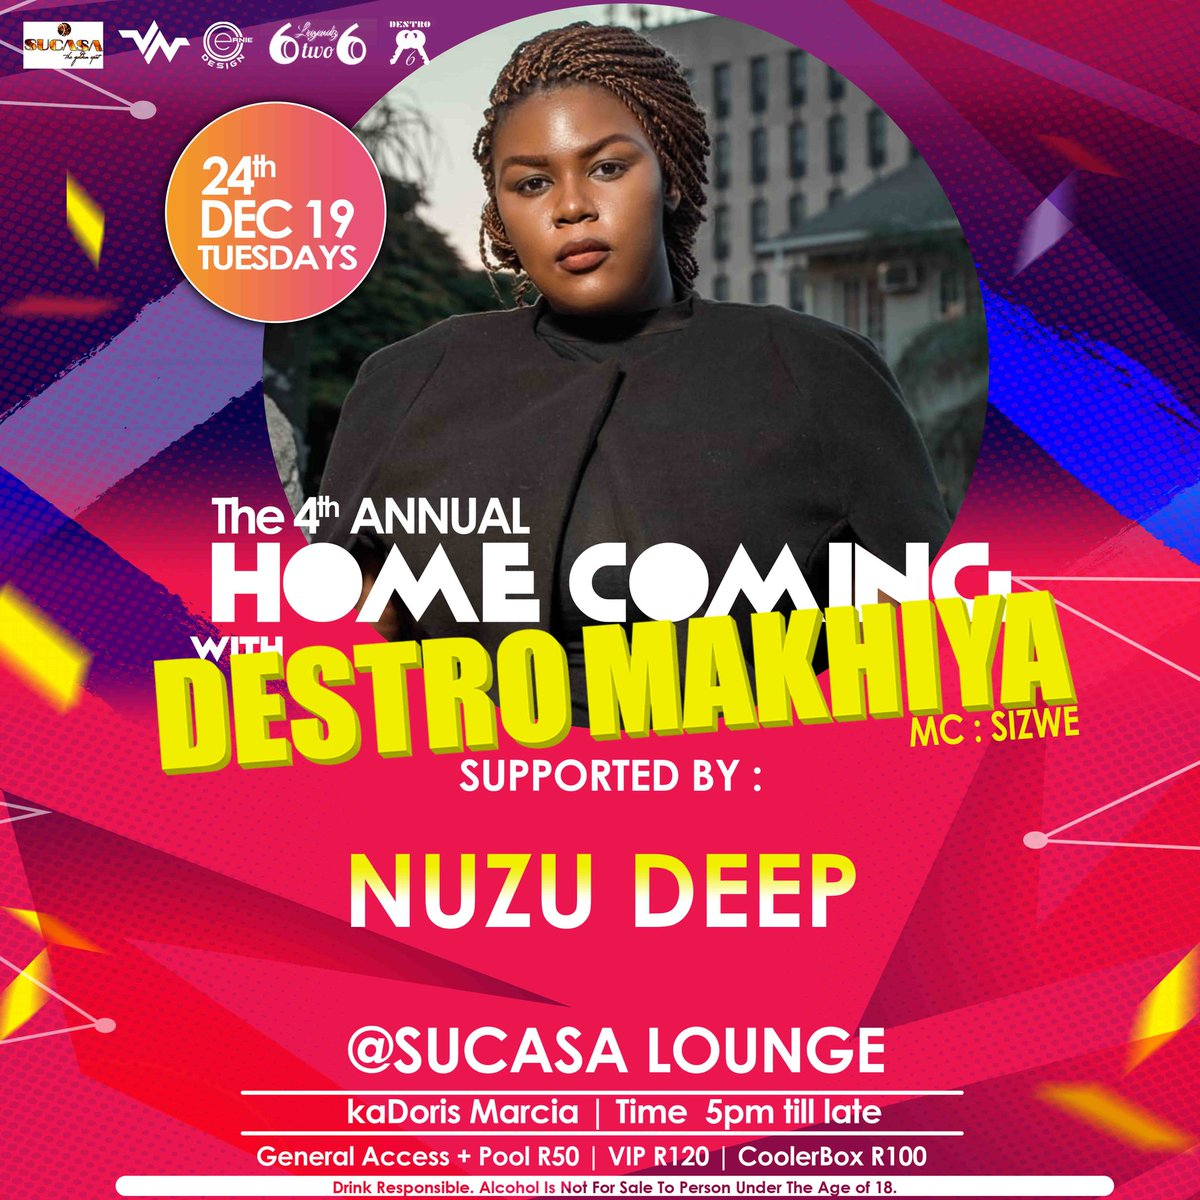 4TH ANNUAL #HCWDM19 FIRST FOUR supporting Acts! 🔥💯 24 Dec 19 @SUCASAtheGoldenSpot❤ #6ikisi https://t.co/DKY4H1guba